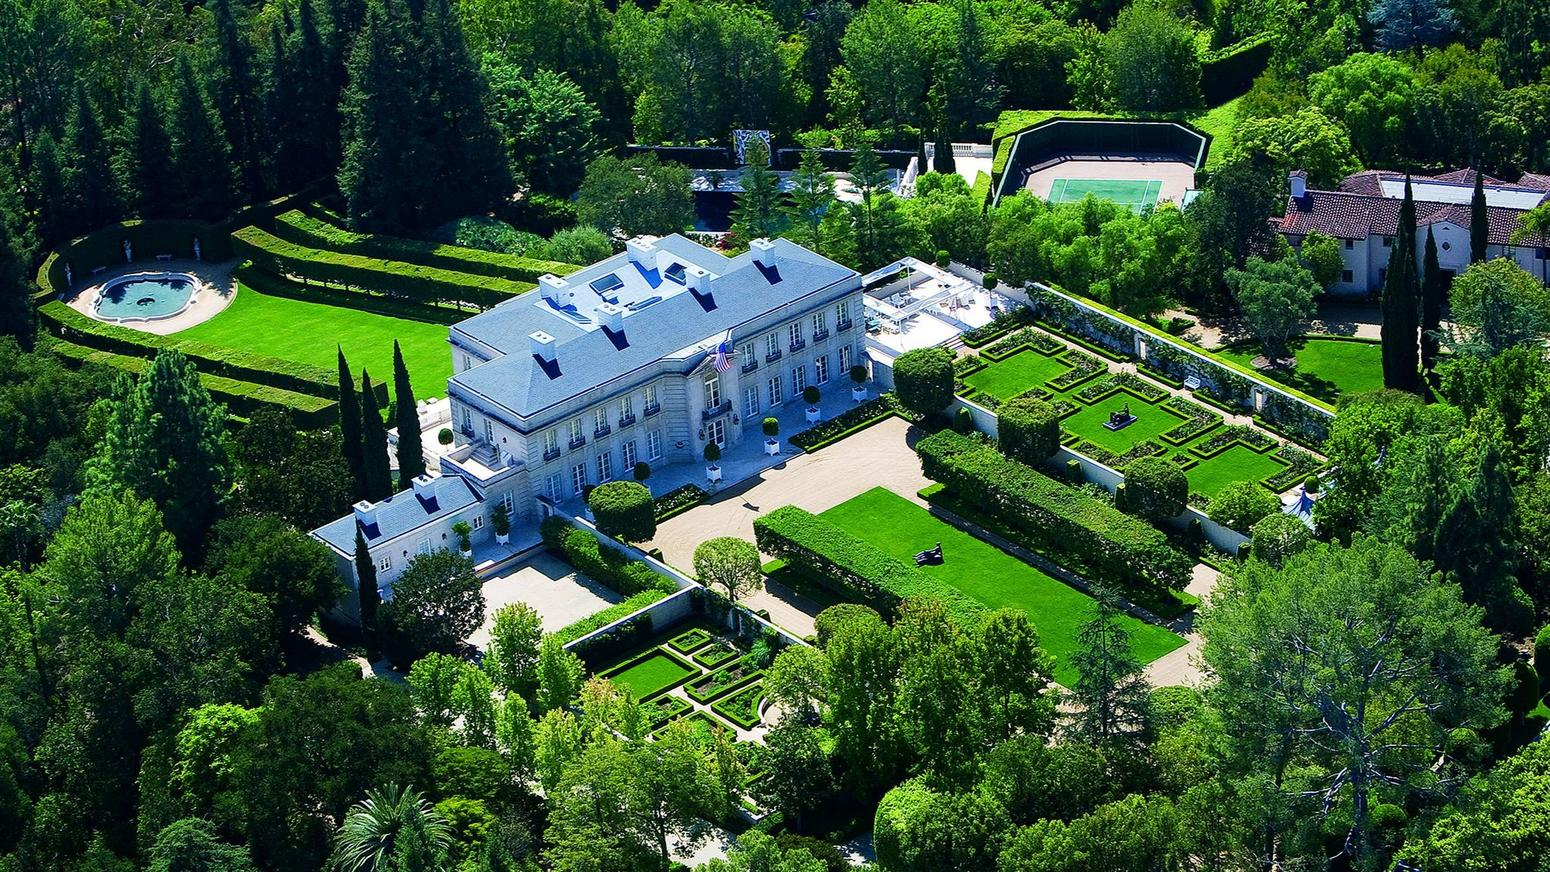 $350-million price for U.S.'s most expensive home gets mixed reviews among agents - Los Angeles Times